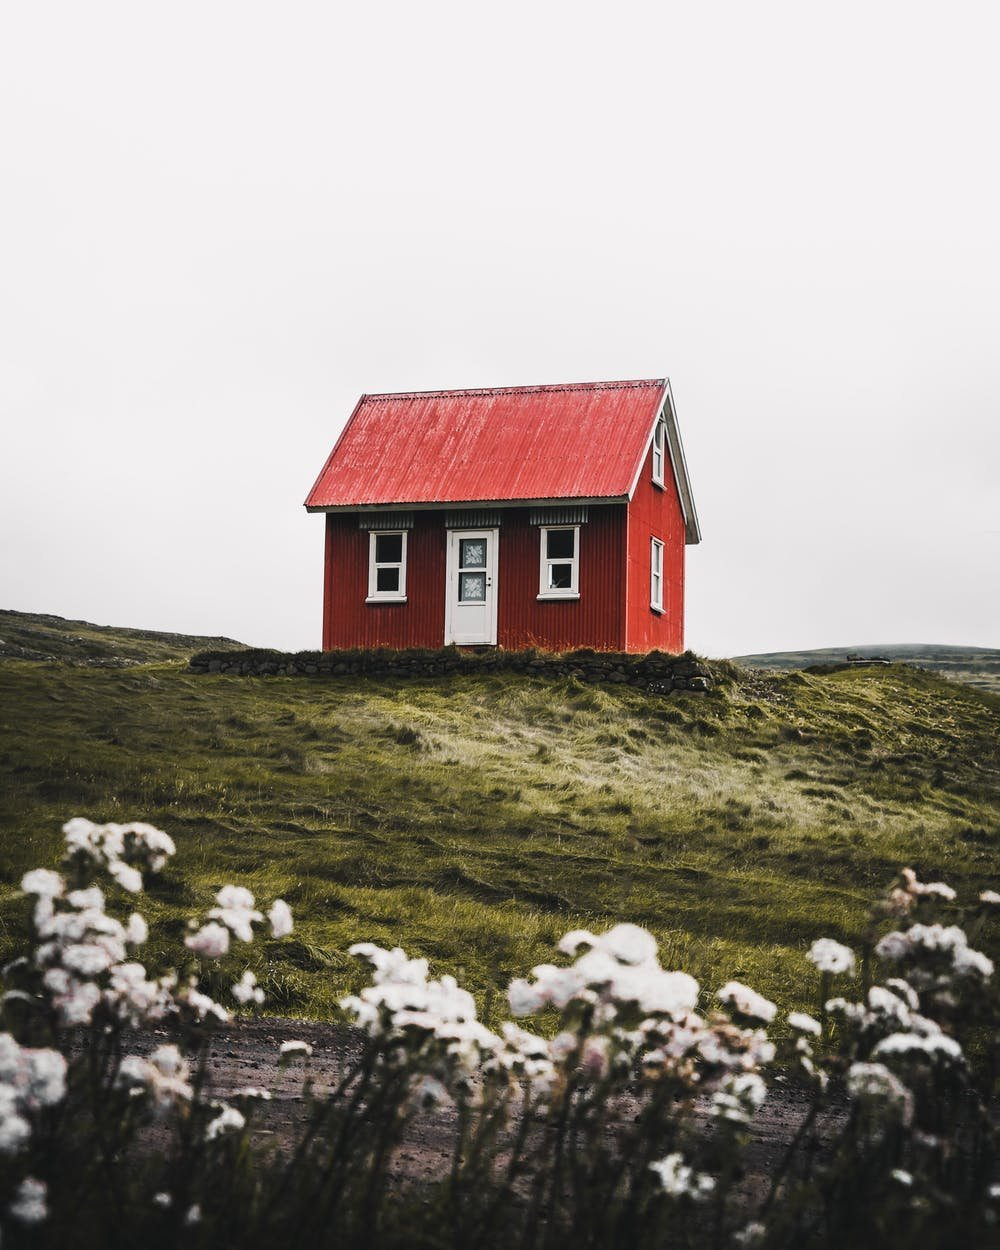 Going cheap. Photo from Luke Stackpoole/Unsplash, CC BY-SA.